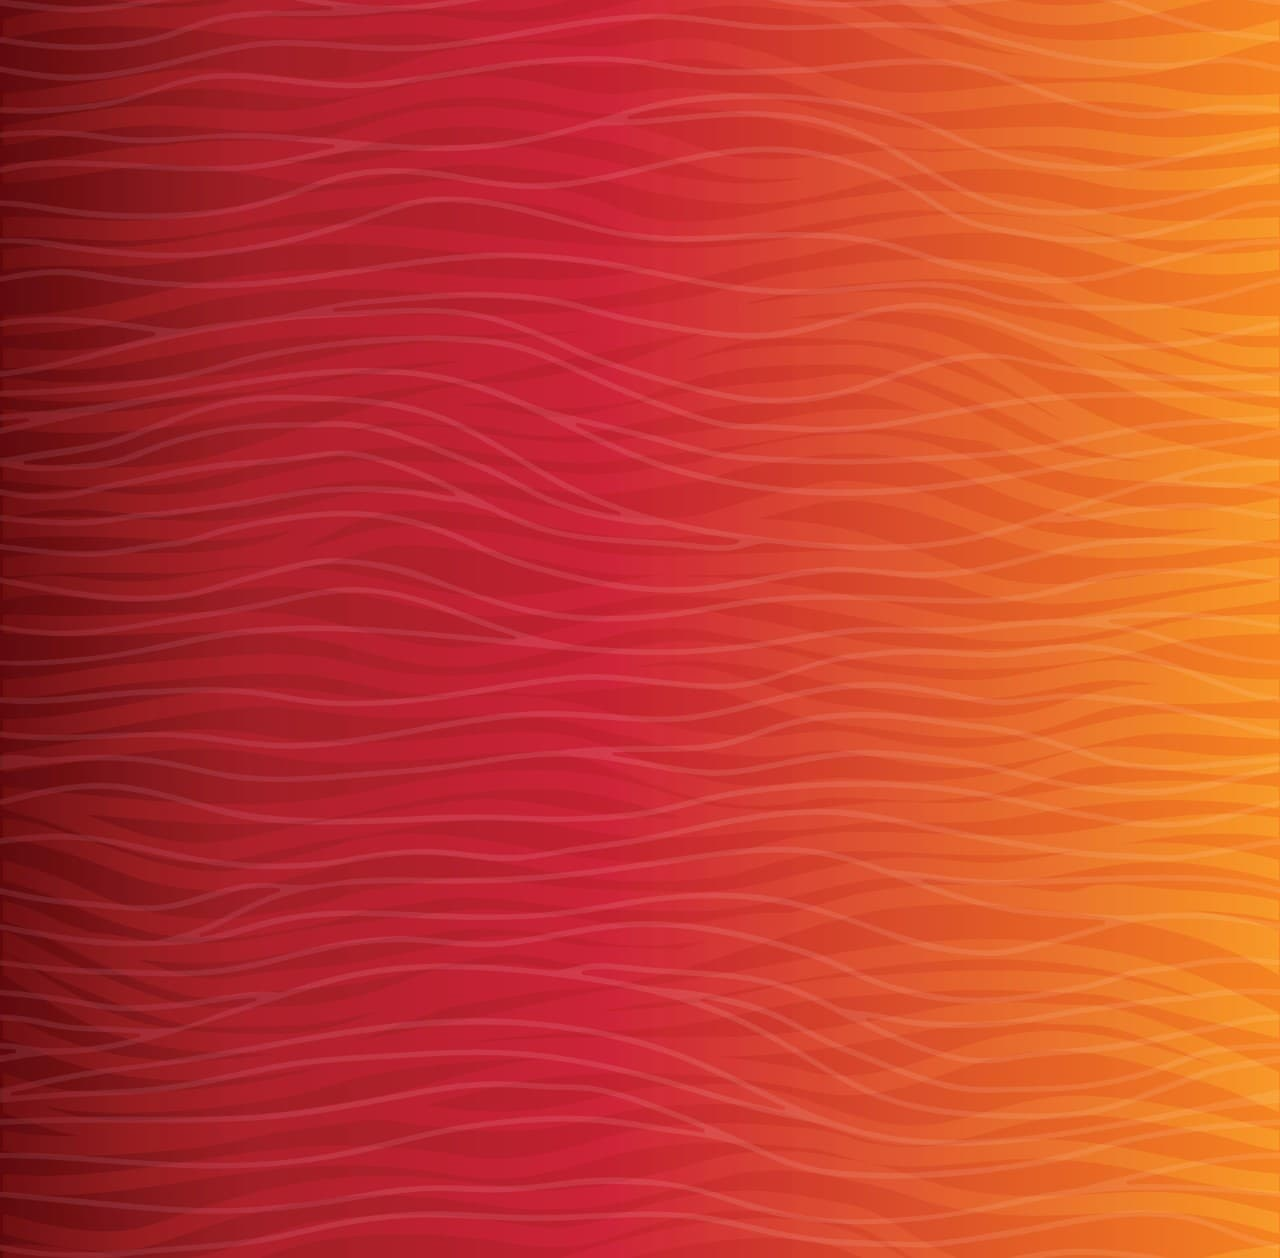 Red Orange abstract art